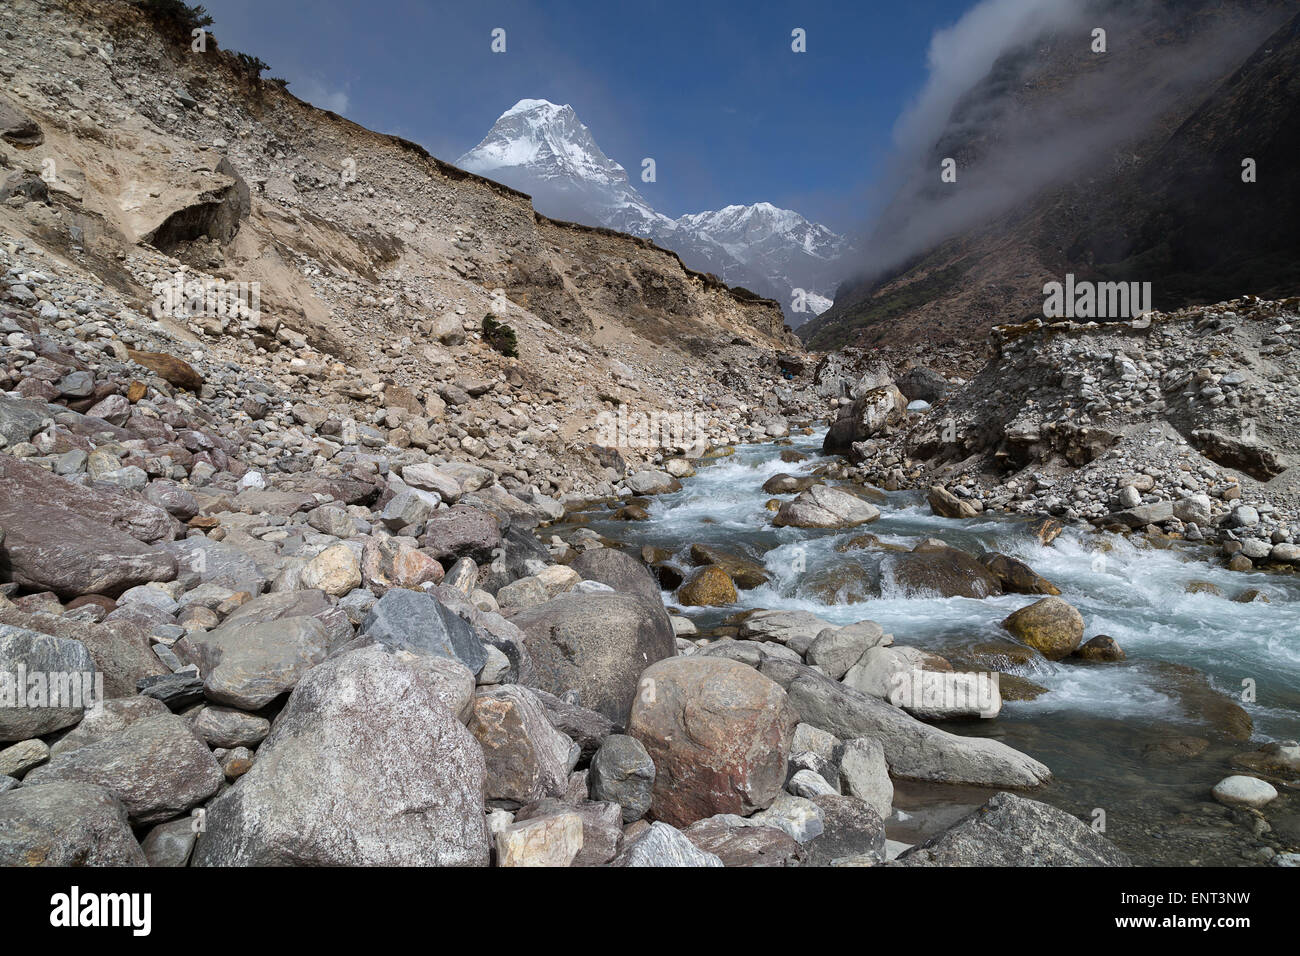 Kyashar (6770m), Everest Region, Nepal - Stock Image